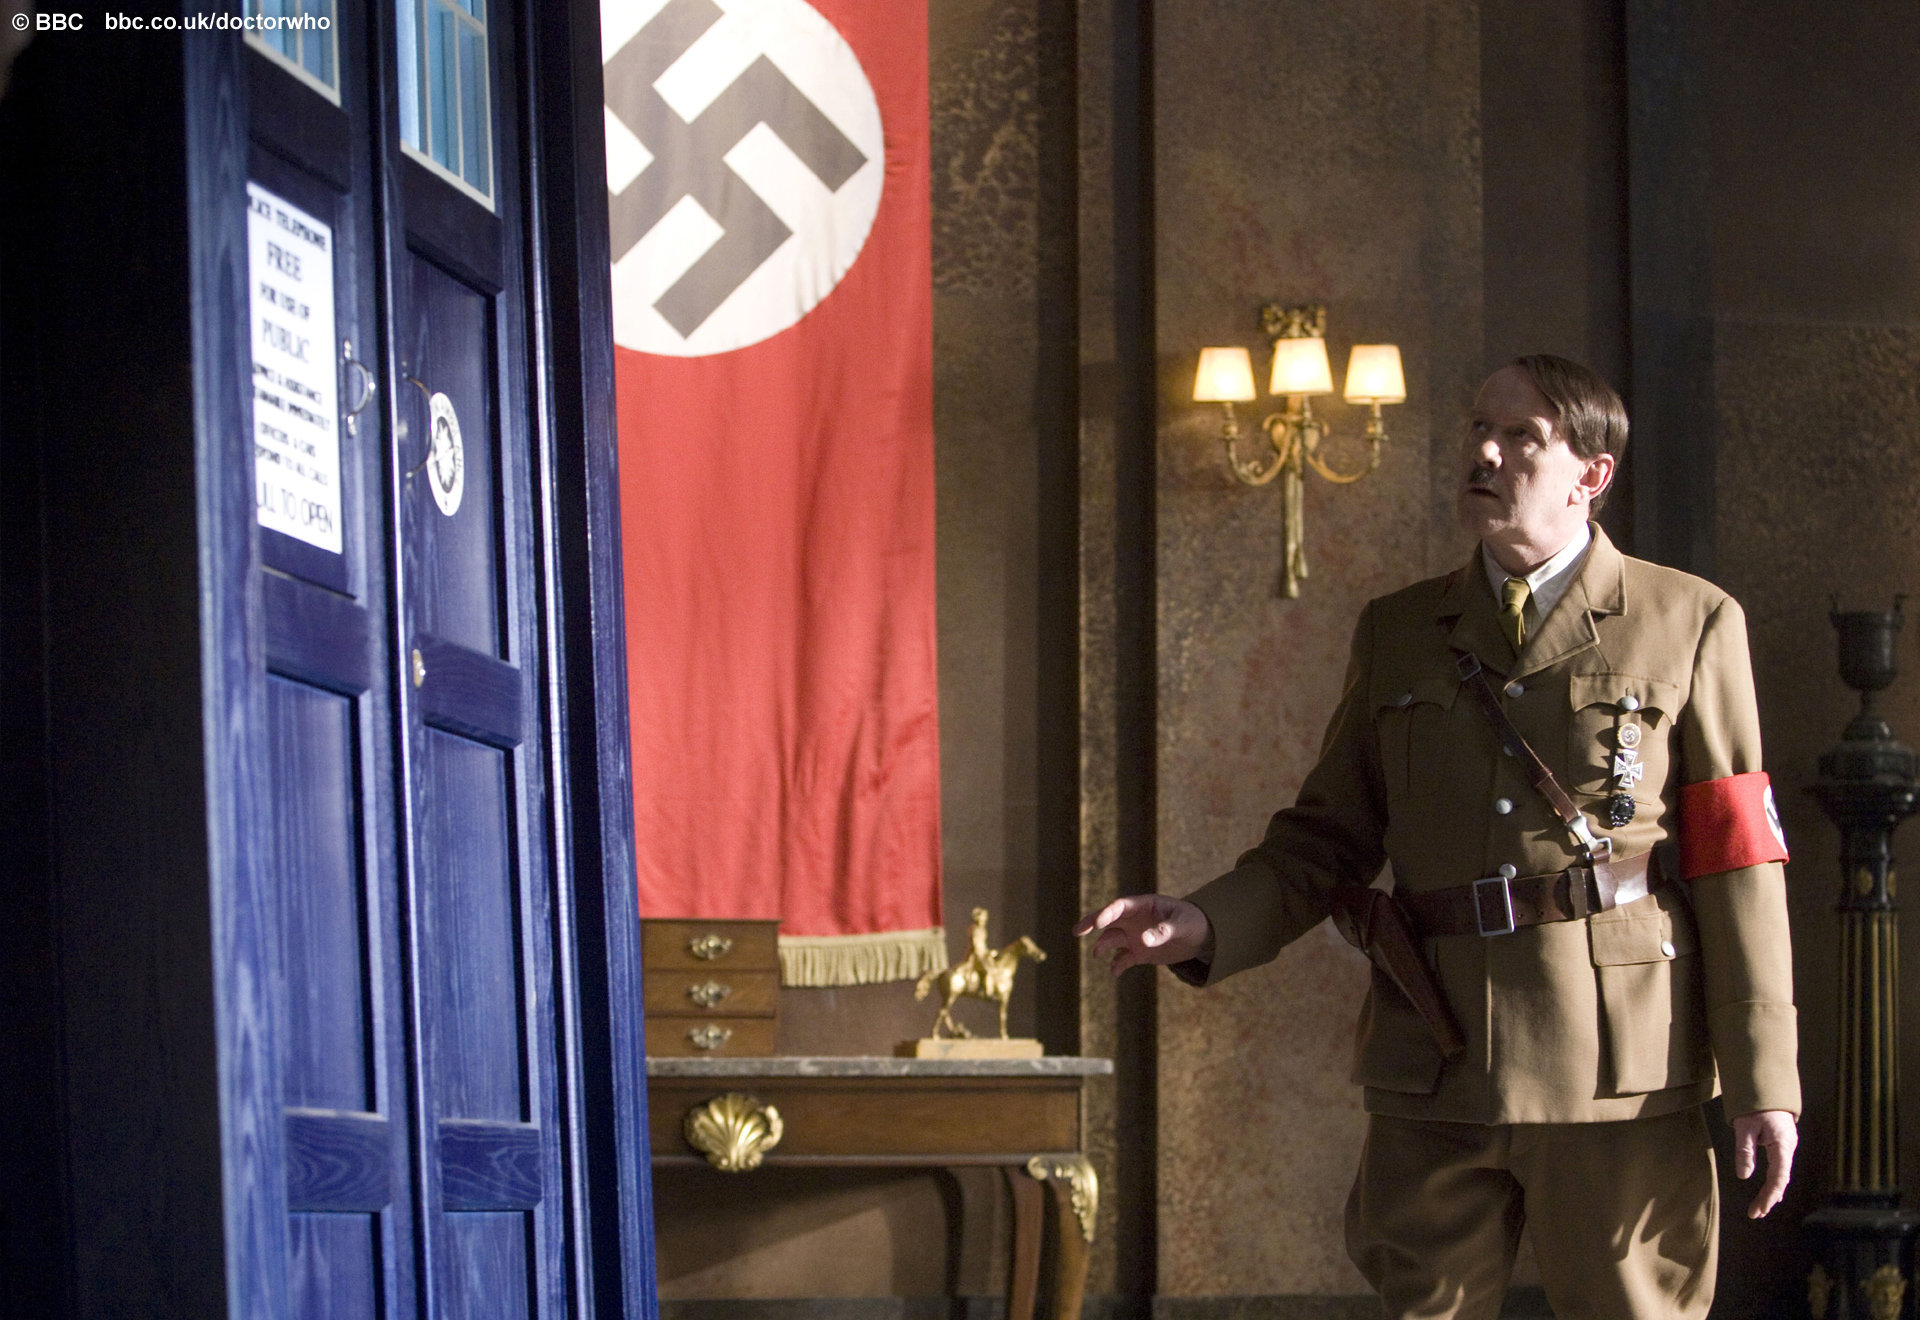 Doctor Who &quot;Let's Kill Hitler&quot; BBC